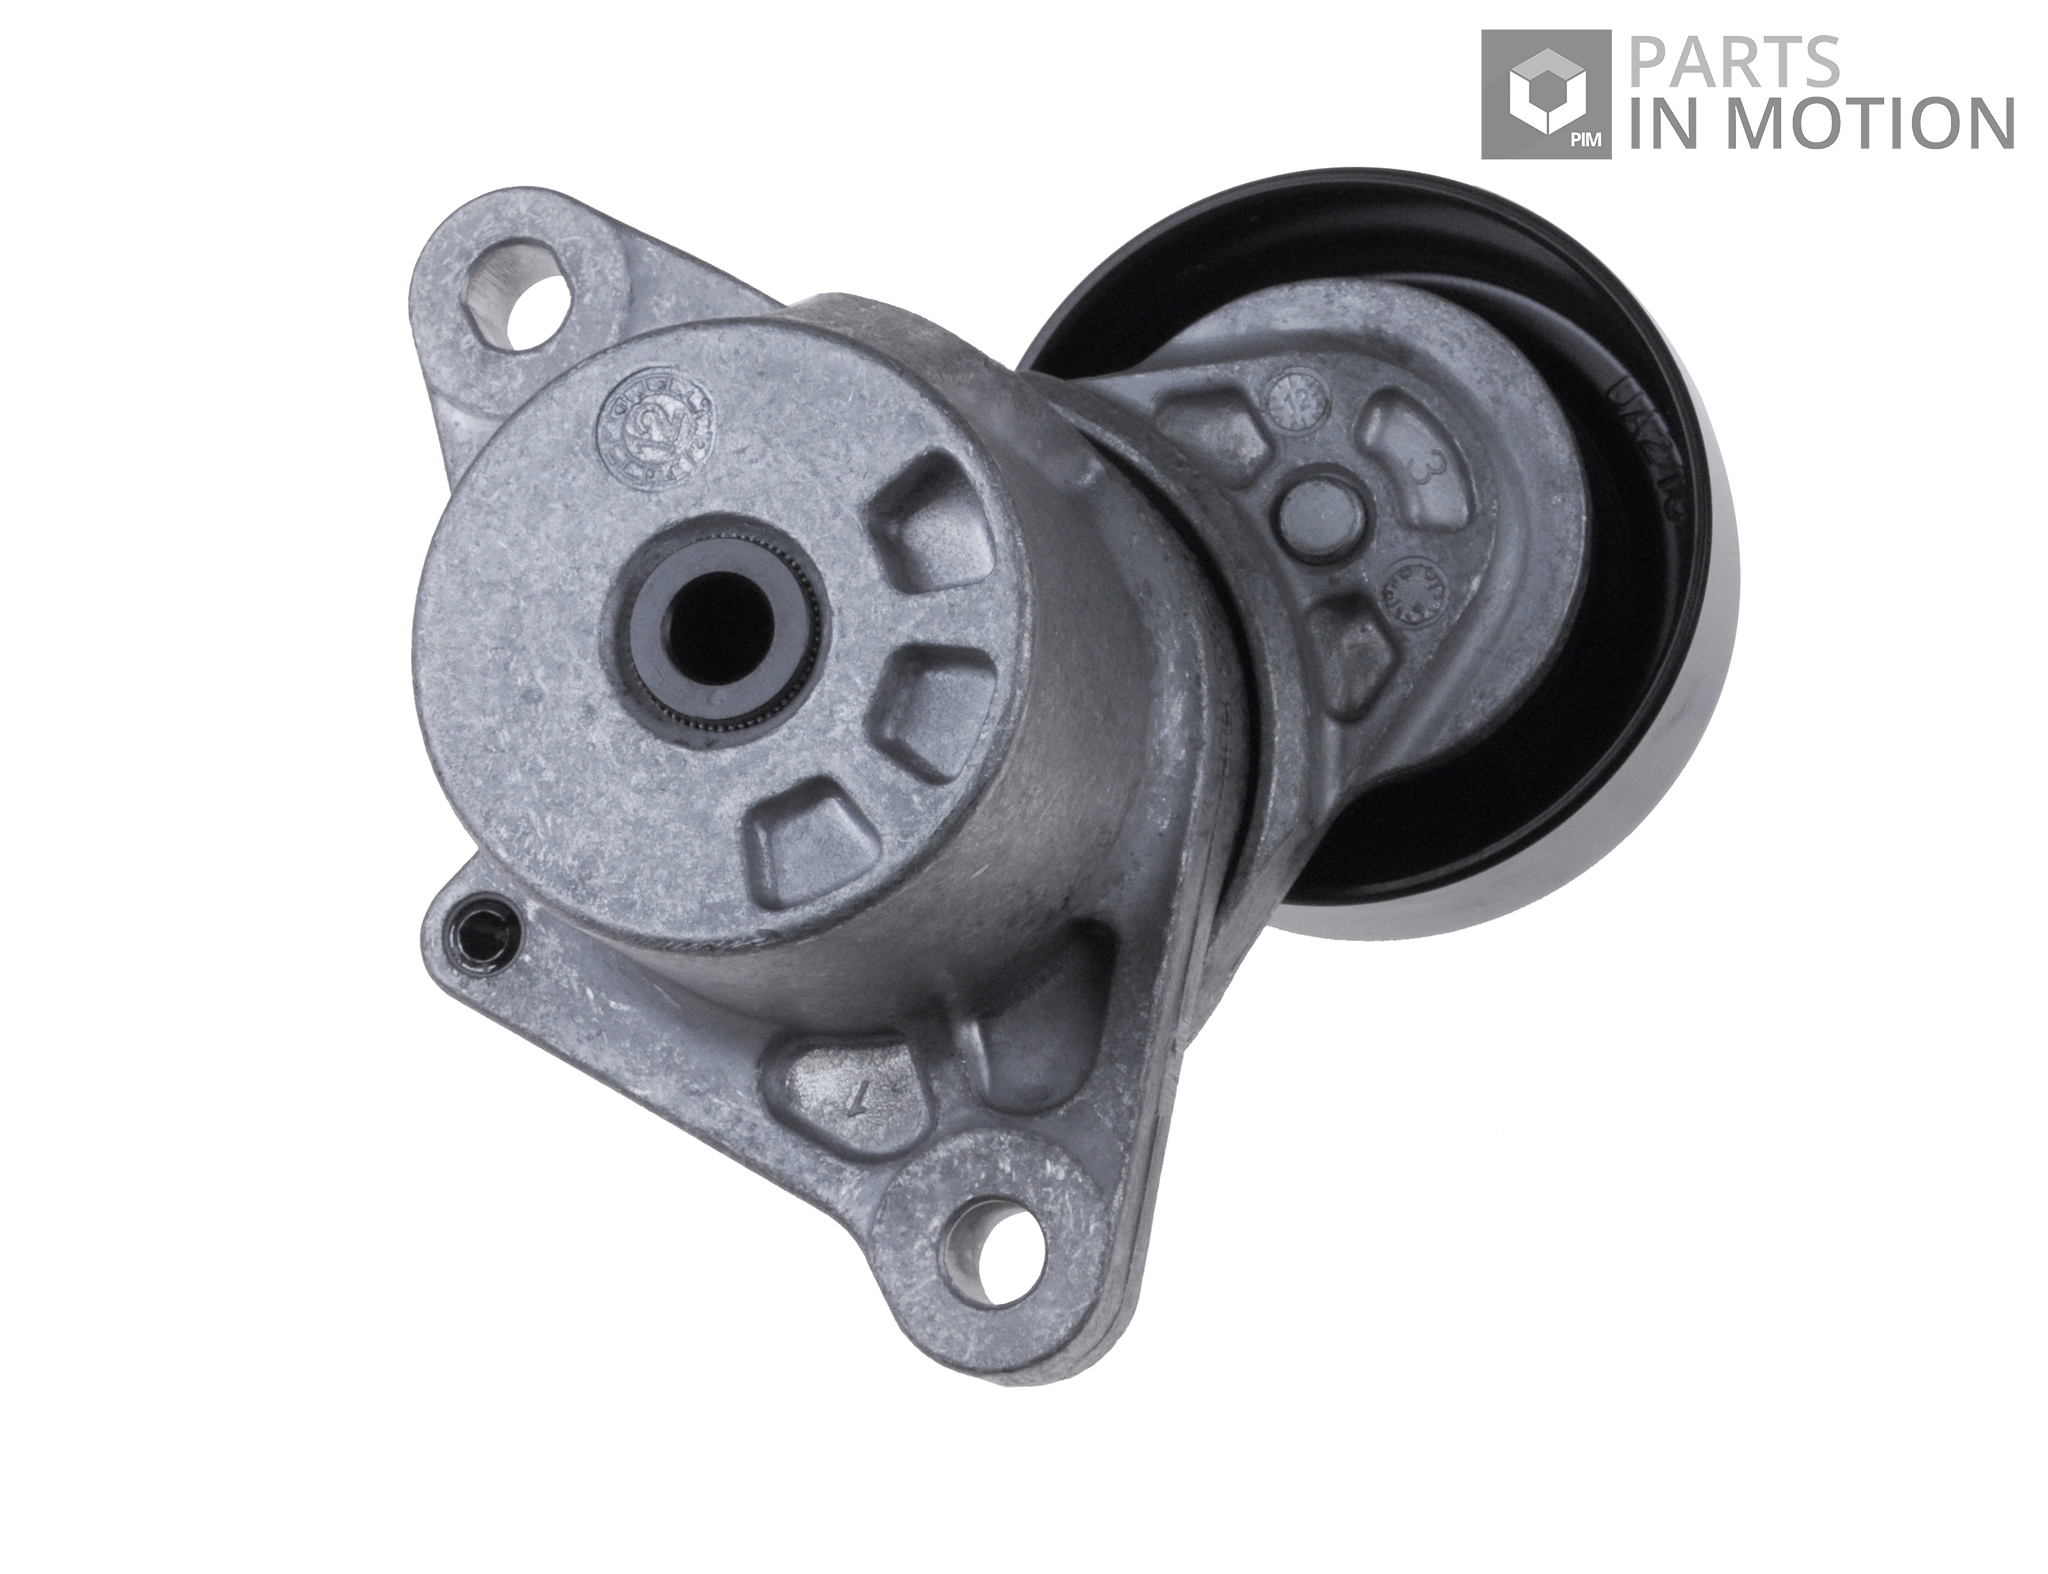 Aux Belt Tensioner Fits Kia Venga 14d 2010 On D4fc Drive V Ribbed Timing And Pulley Drives Power Transmission Products Leeds Blue Print Adg096511